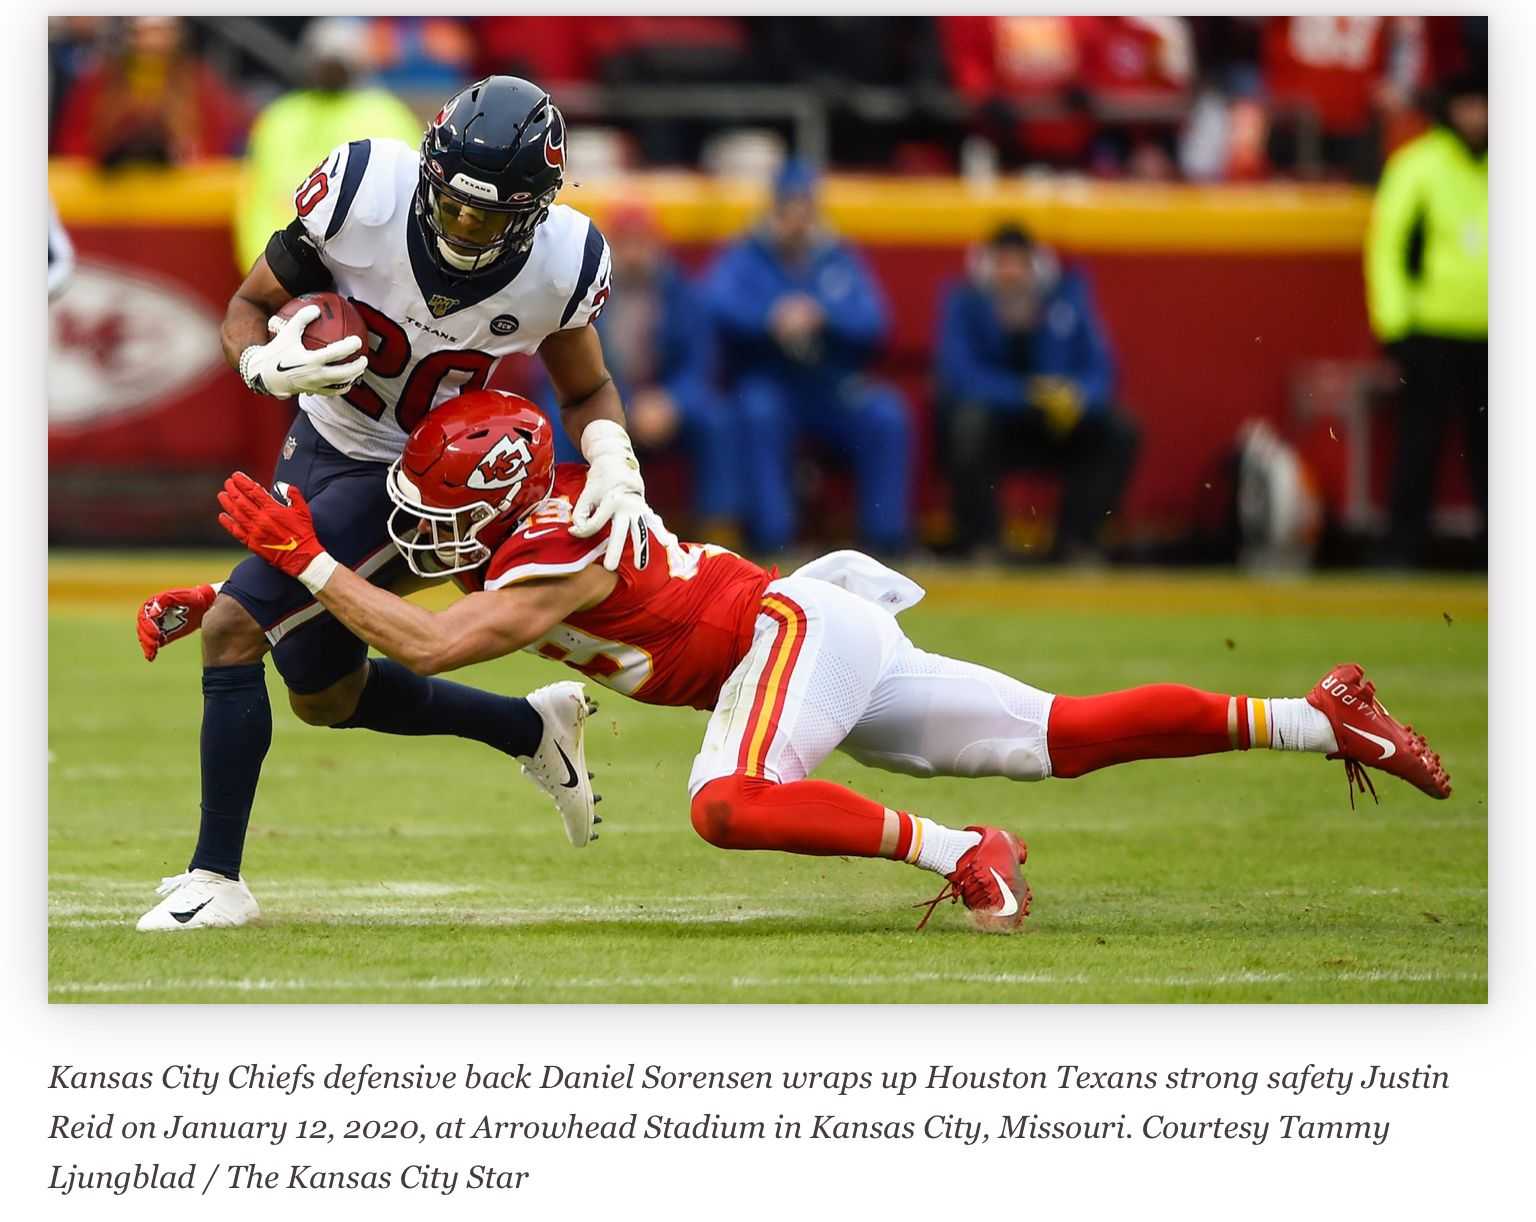 Pin by Skinny on KC Chiefs in 2020 Kansas city